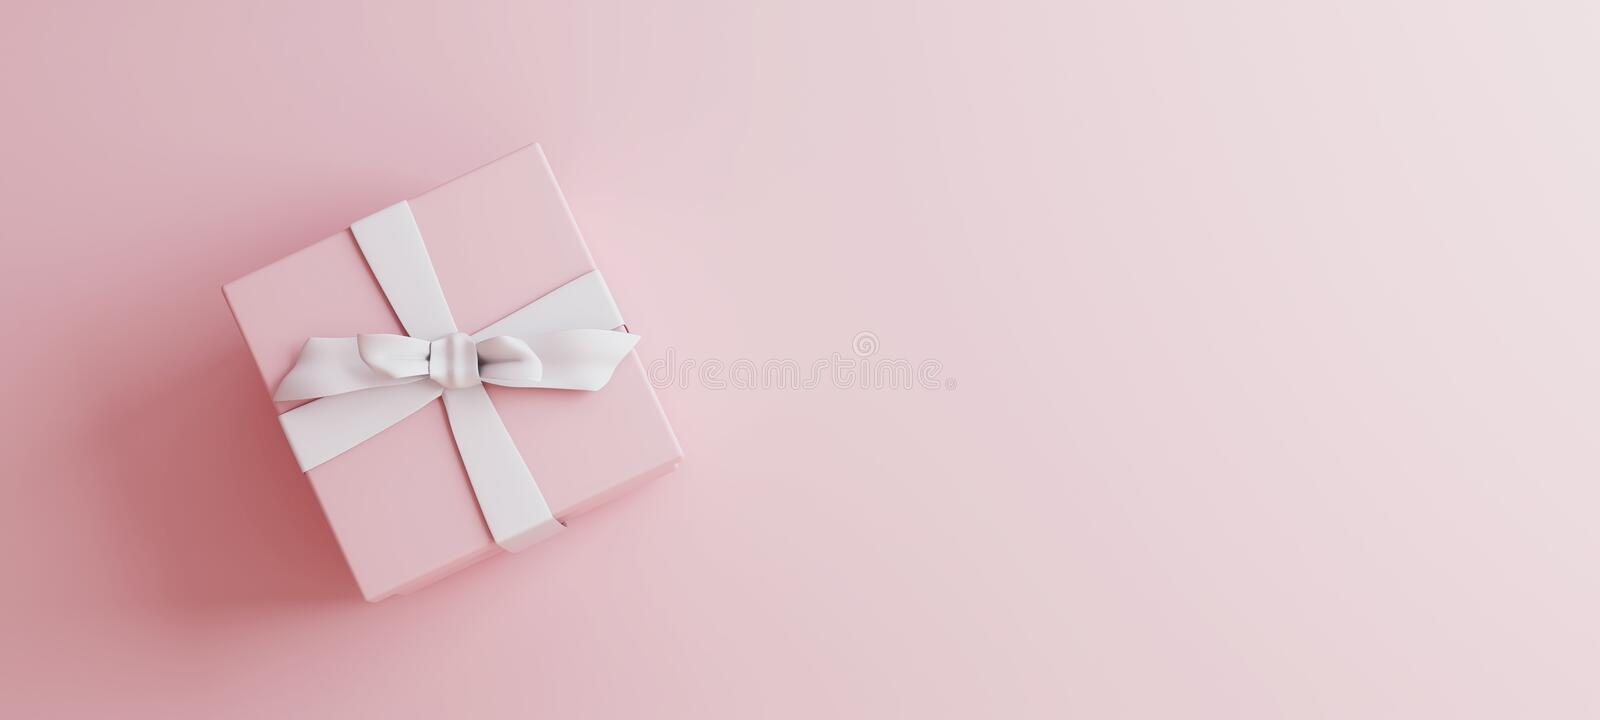 Mock-up poster, gentle millennial pink colored gift box with white bow on light pink background stock photography